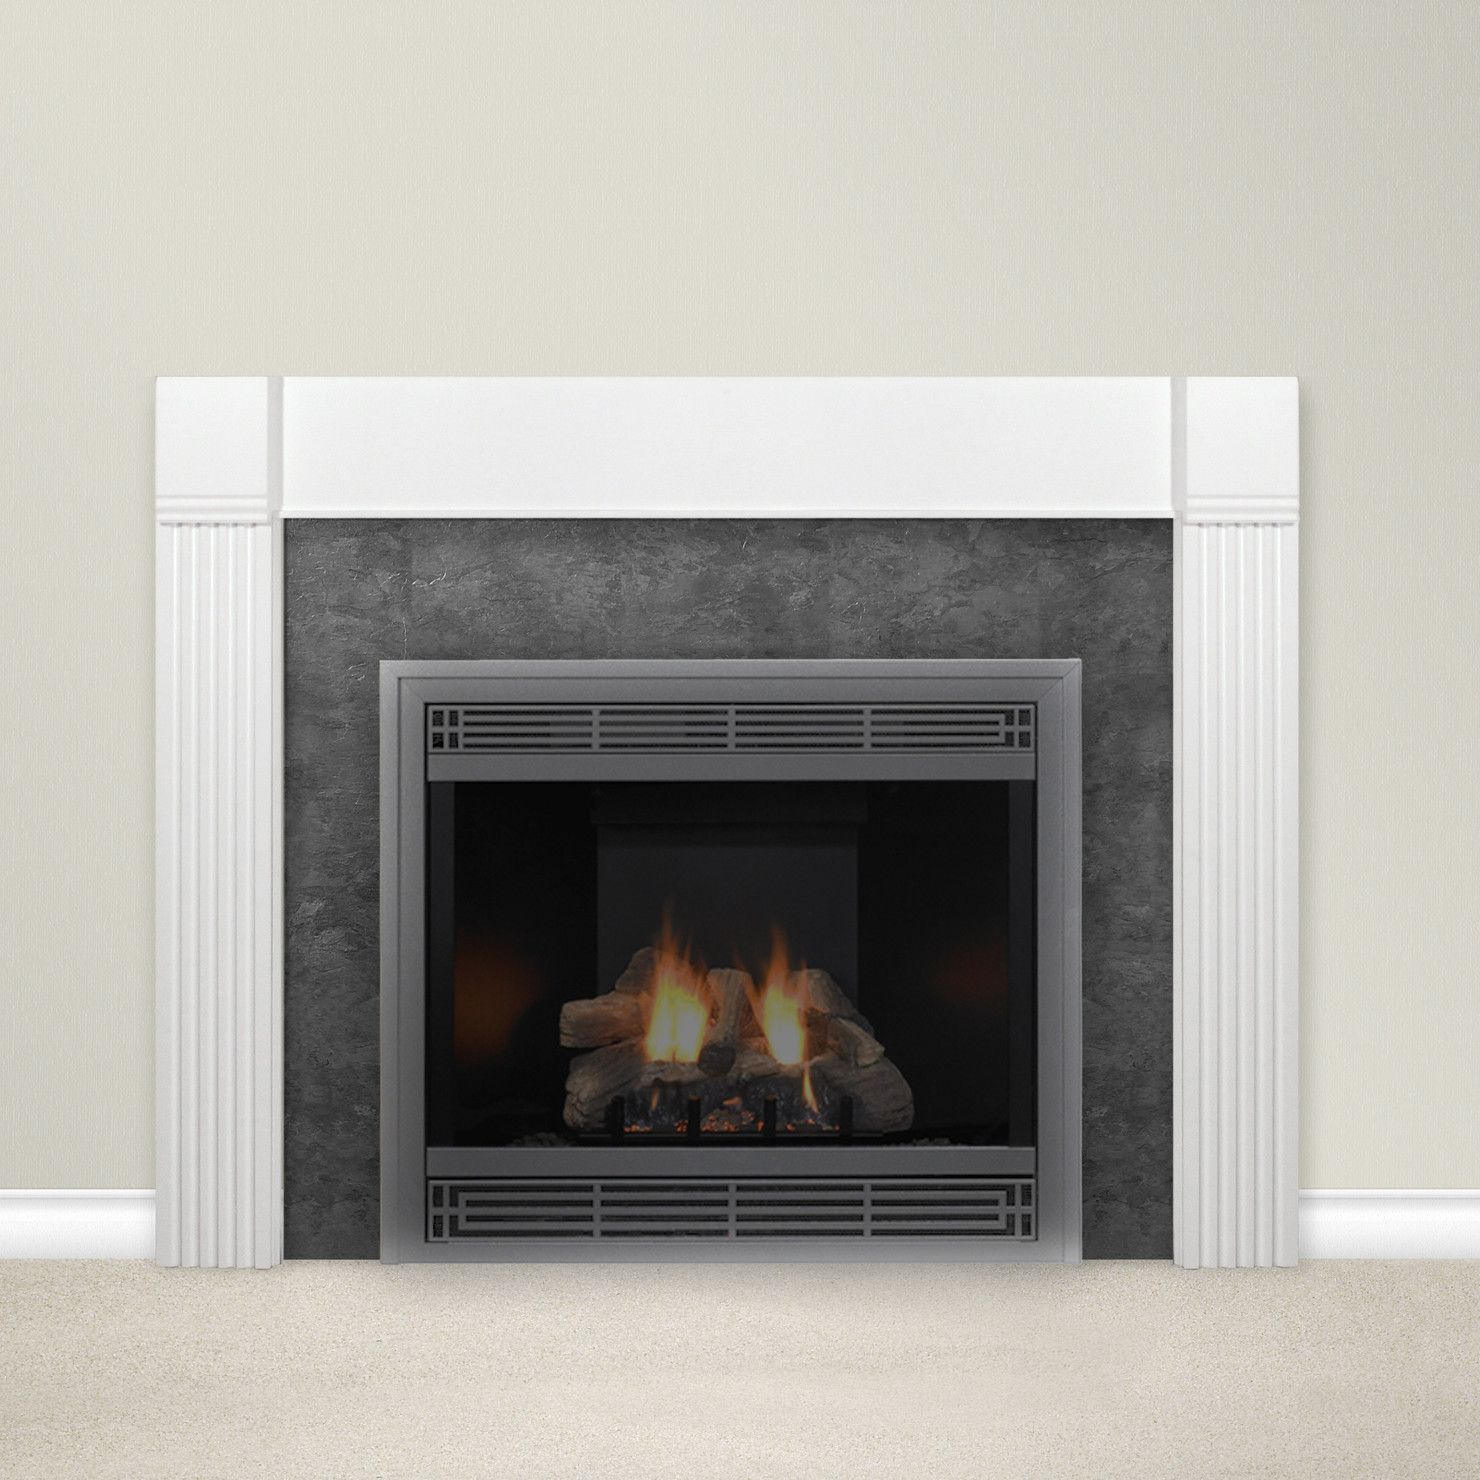 Features It Comes With Classic Styling Made From Traditional Hardwoods Made From 3 4 Inch Cabinetry Components In Classic Styling White Mantel